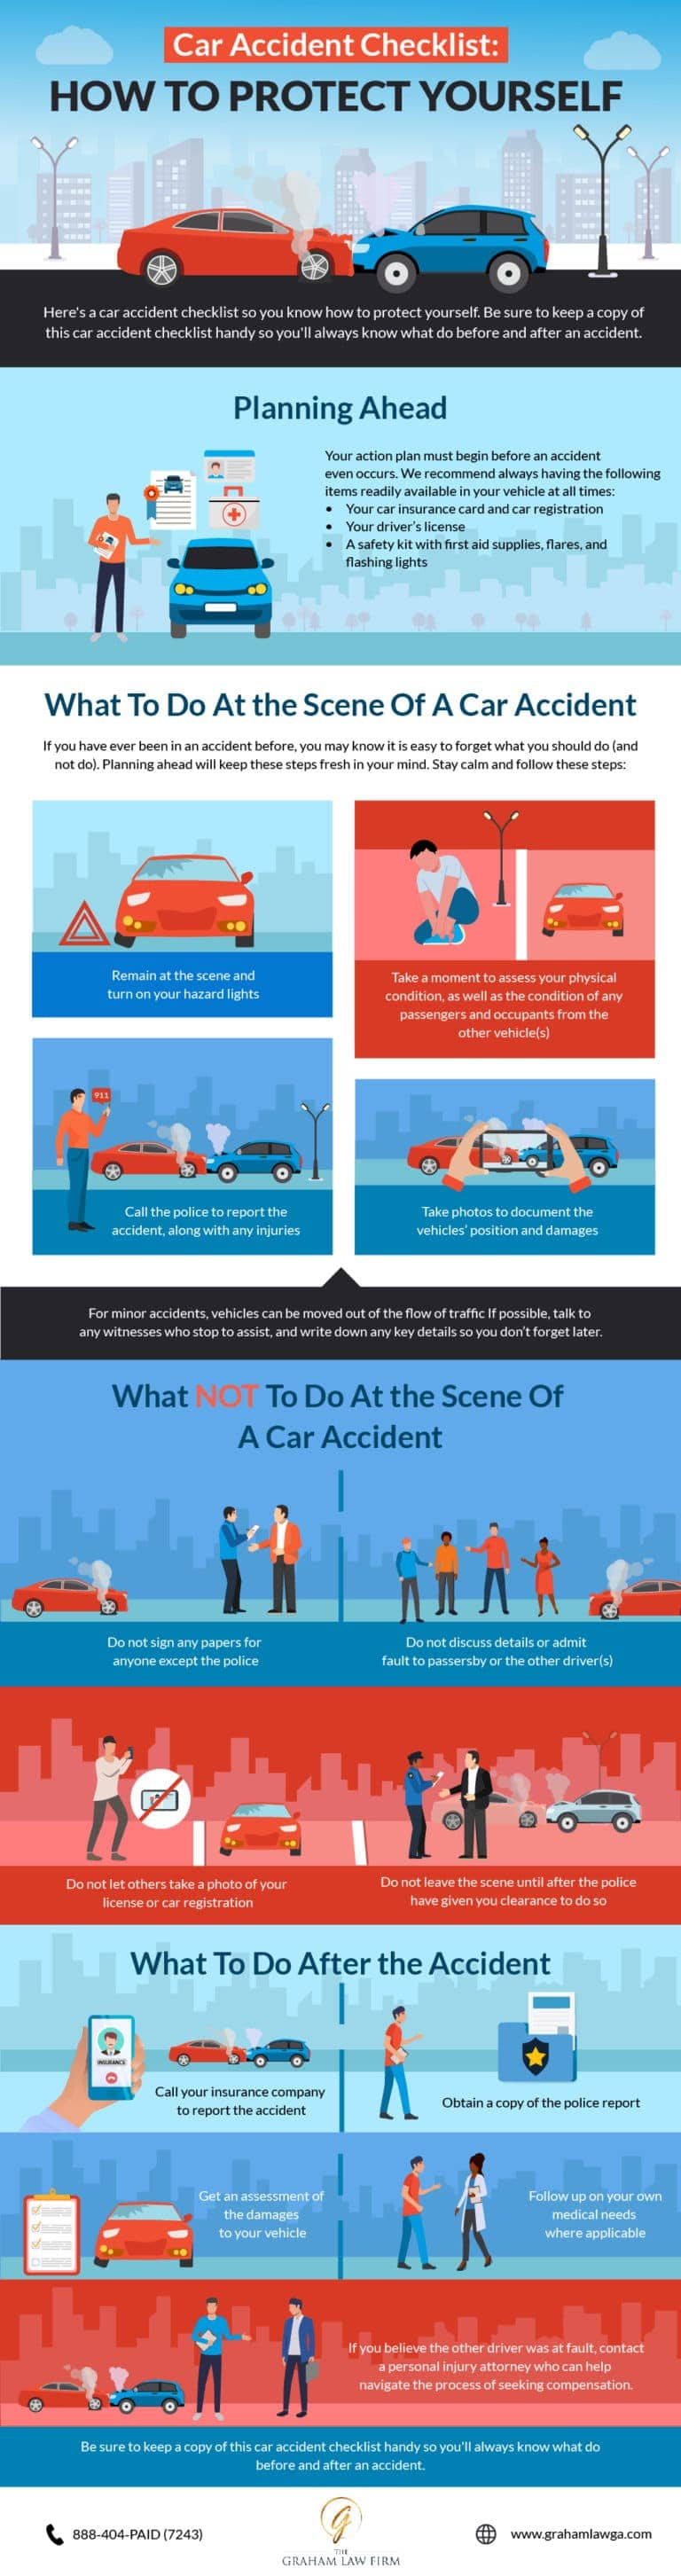 Car Accident Checklist: How to Protect Yourself #infographic